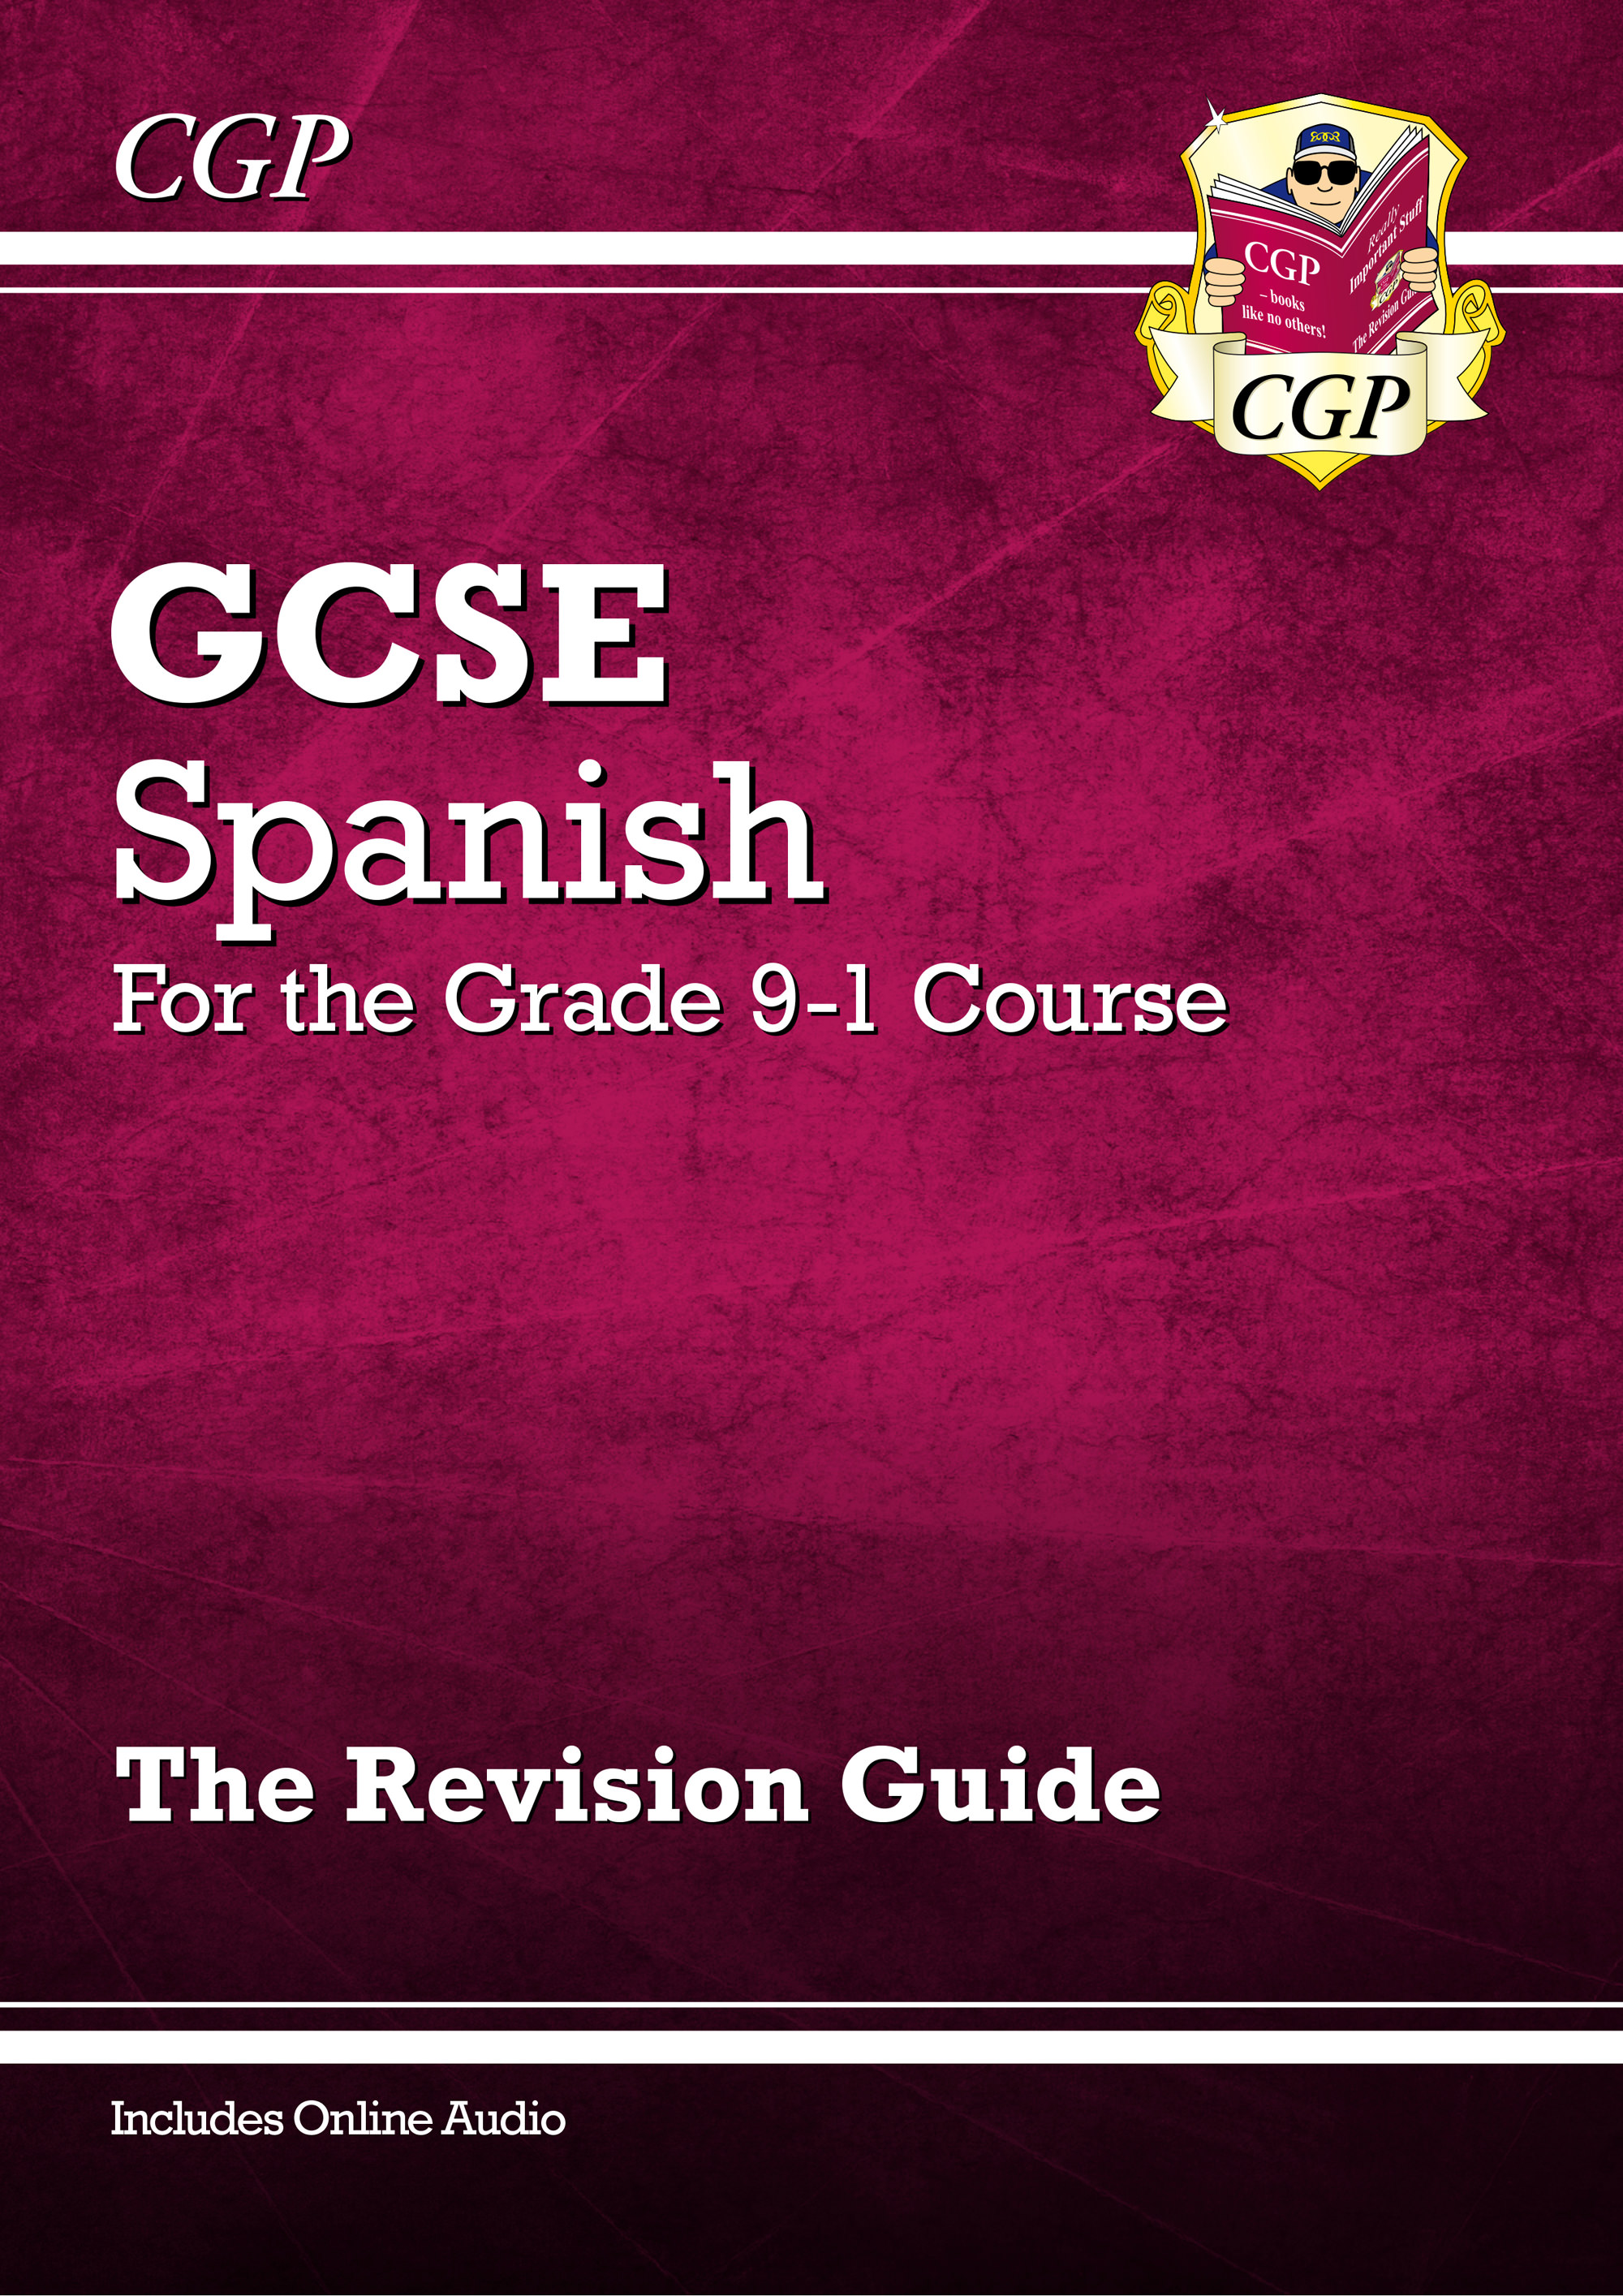 SPHR44DK - New GCSE Spanish Revision Guide - for the Grade 9-1 Course